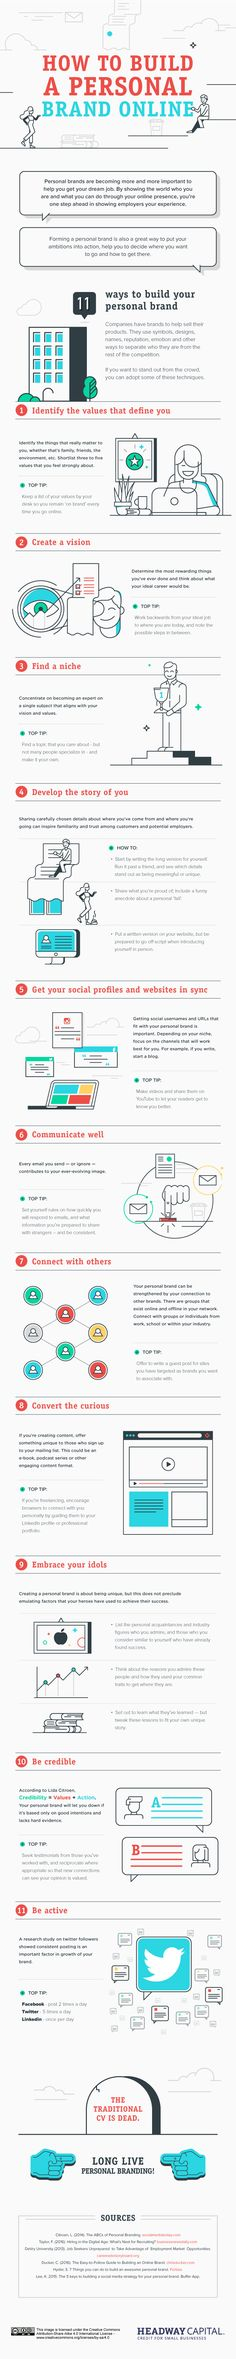 How to build a personal brand online - infographic http://xtremefreelance.com/oferta